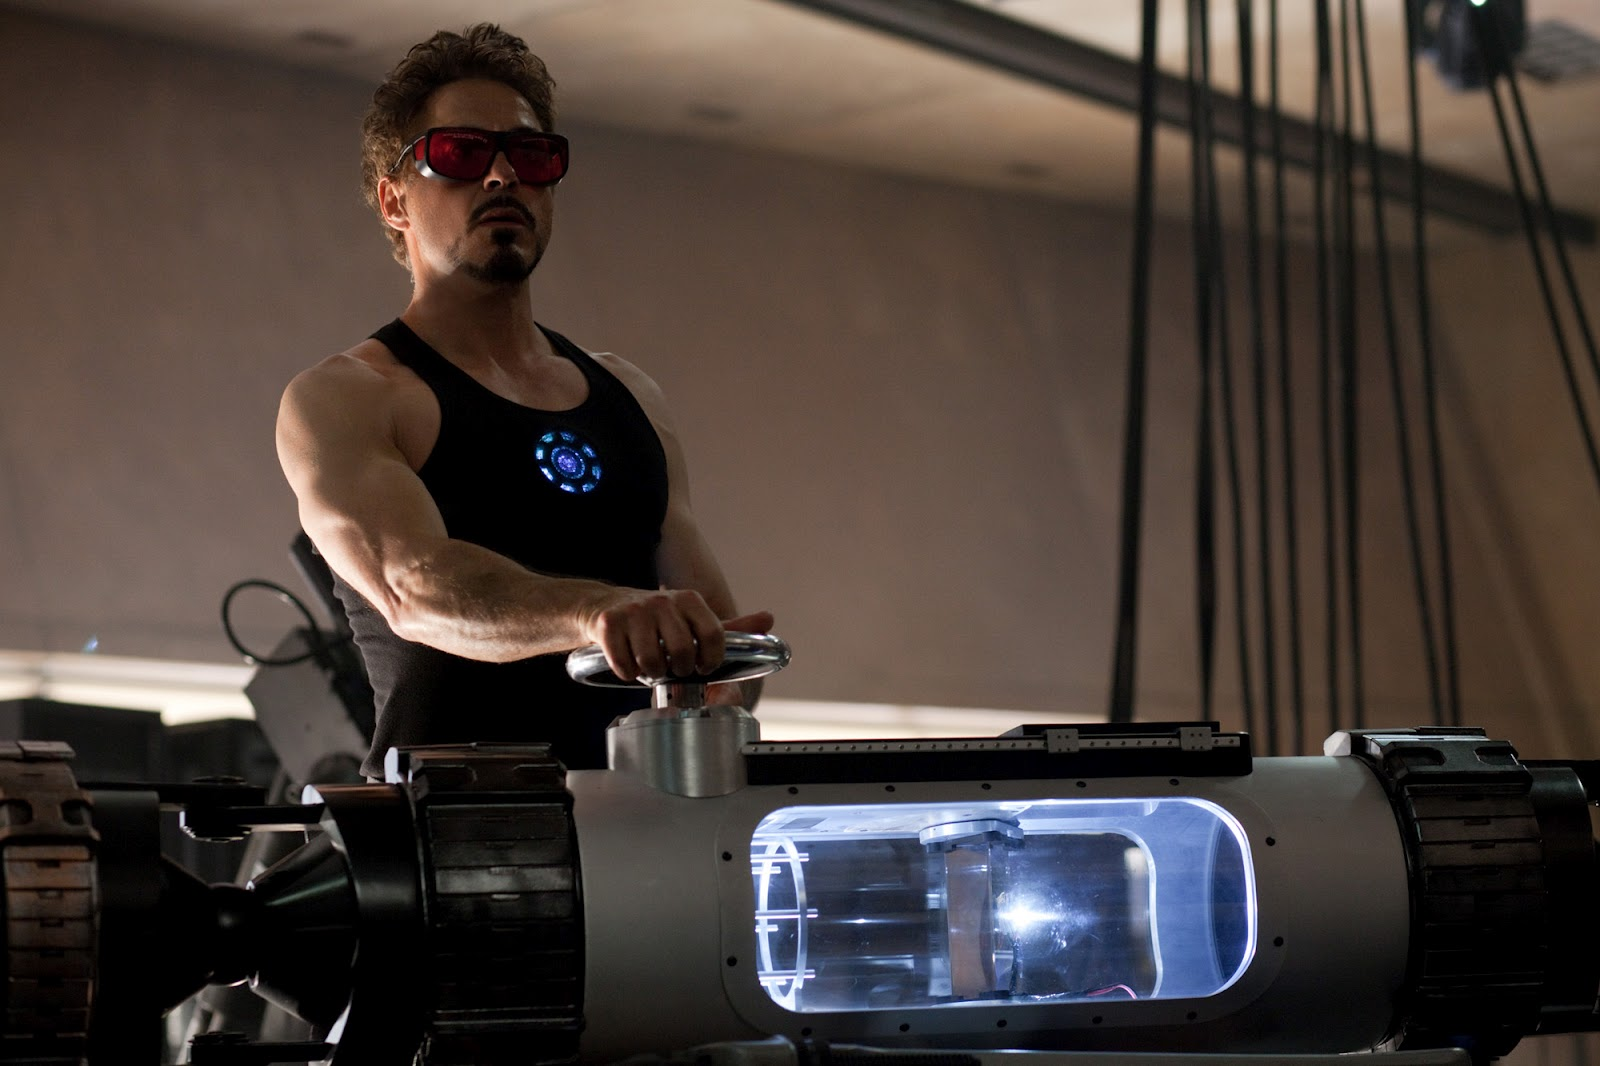 http://1.bp.blogspot.com/-Onu6fGzWXKk/T5RTozG2PMI/AAAAAAAAAOk/VtRJ9QeyqqM/s1600/iron-man-2-movie-image-robert-downey-jr.jpg